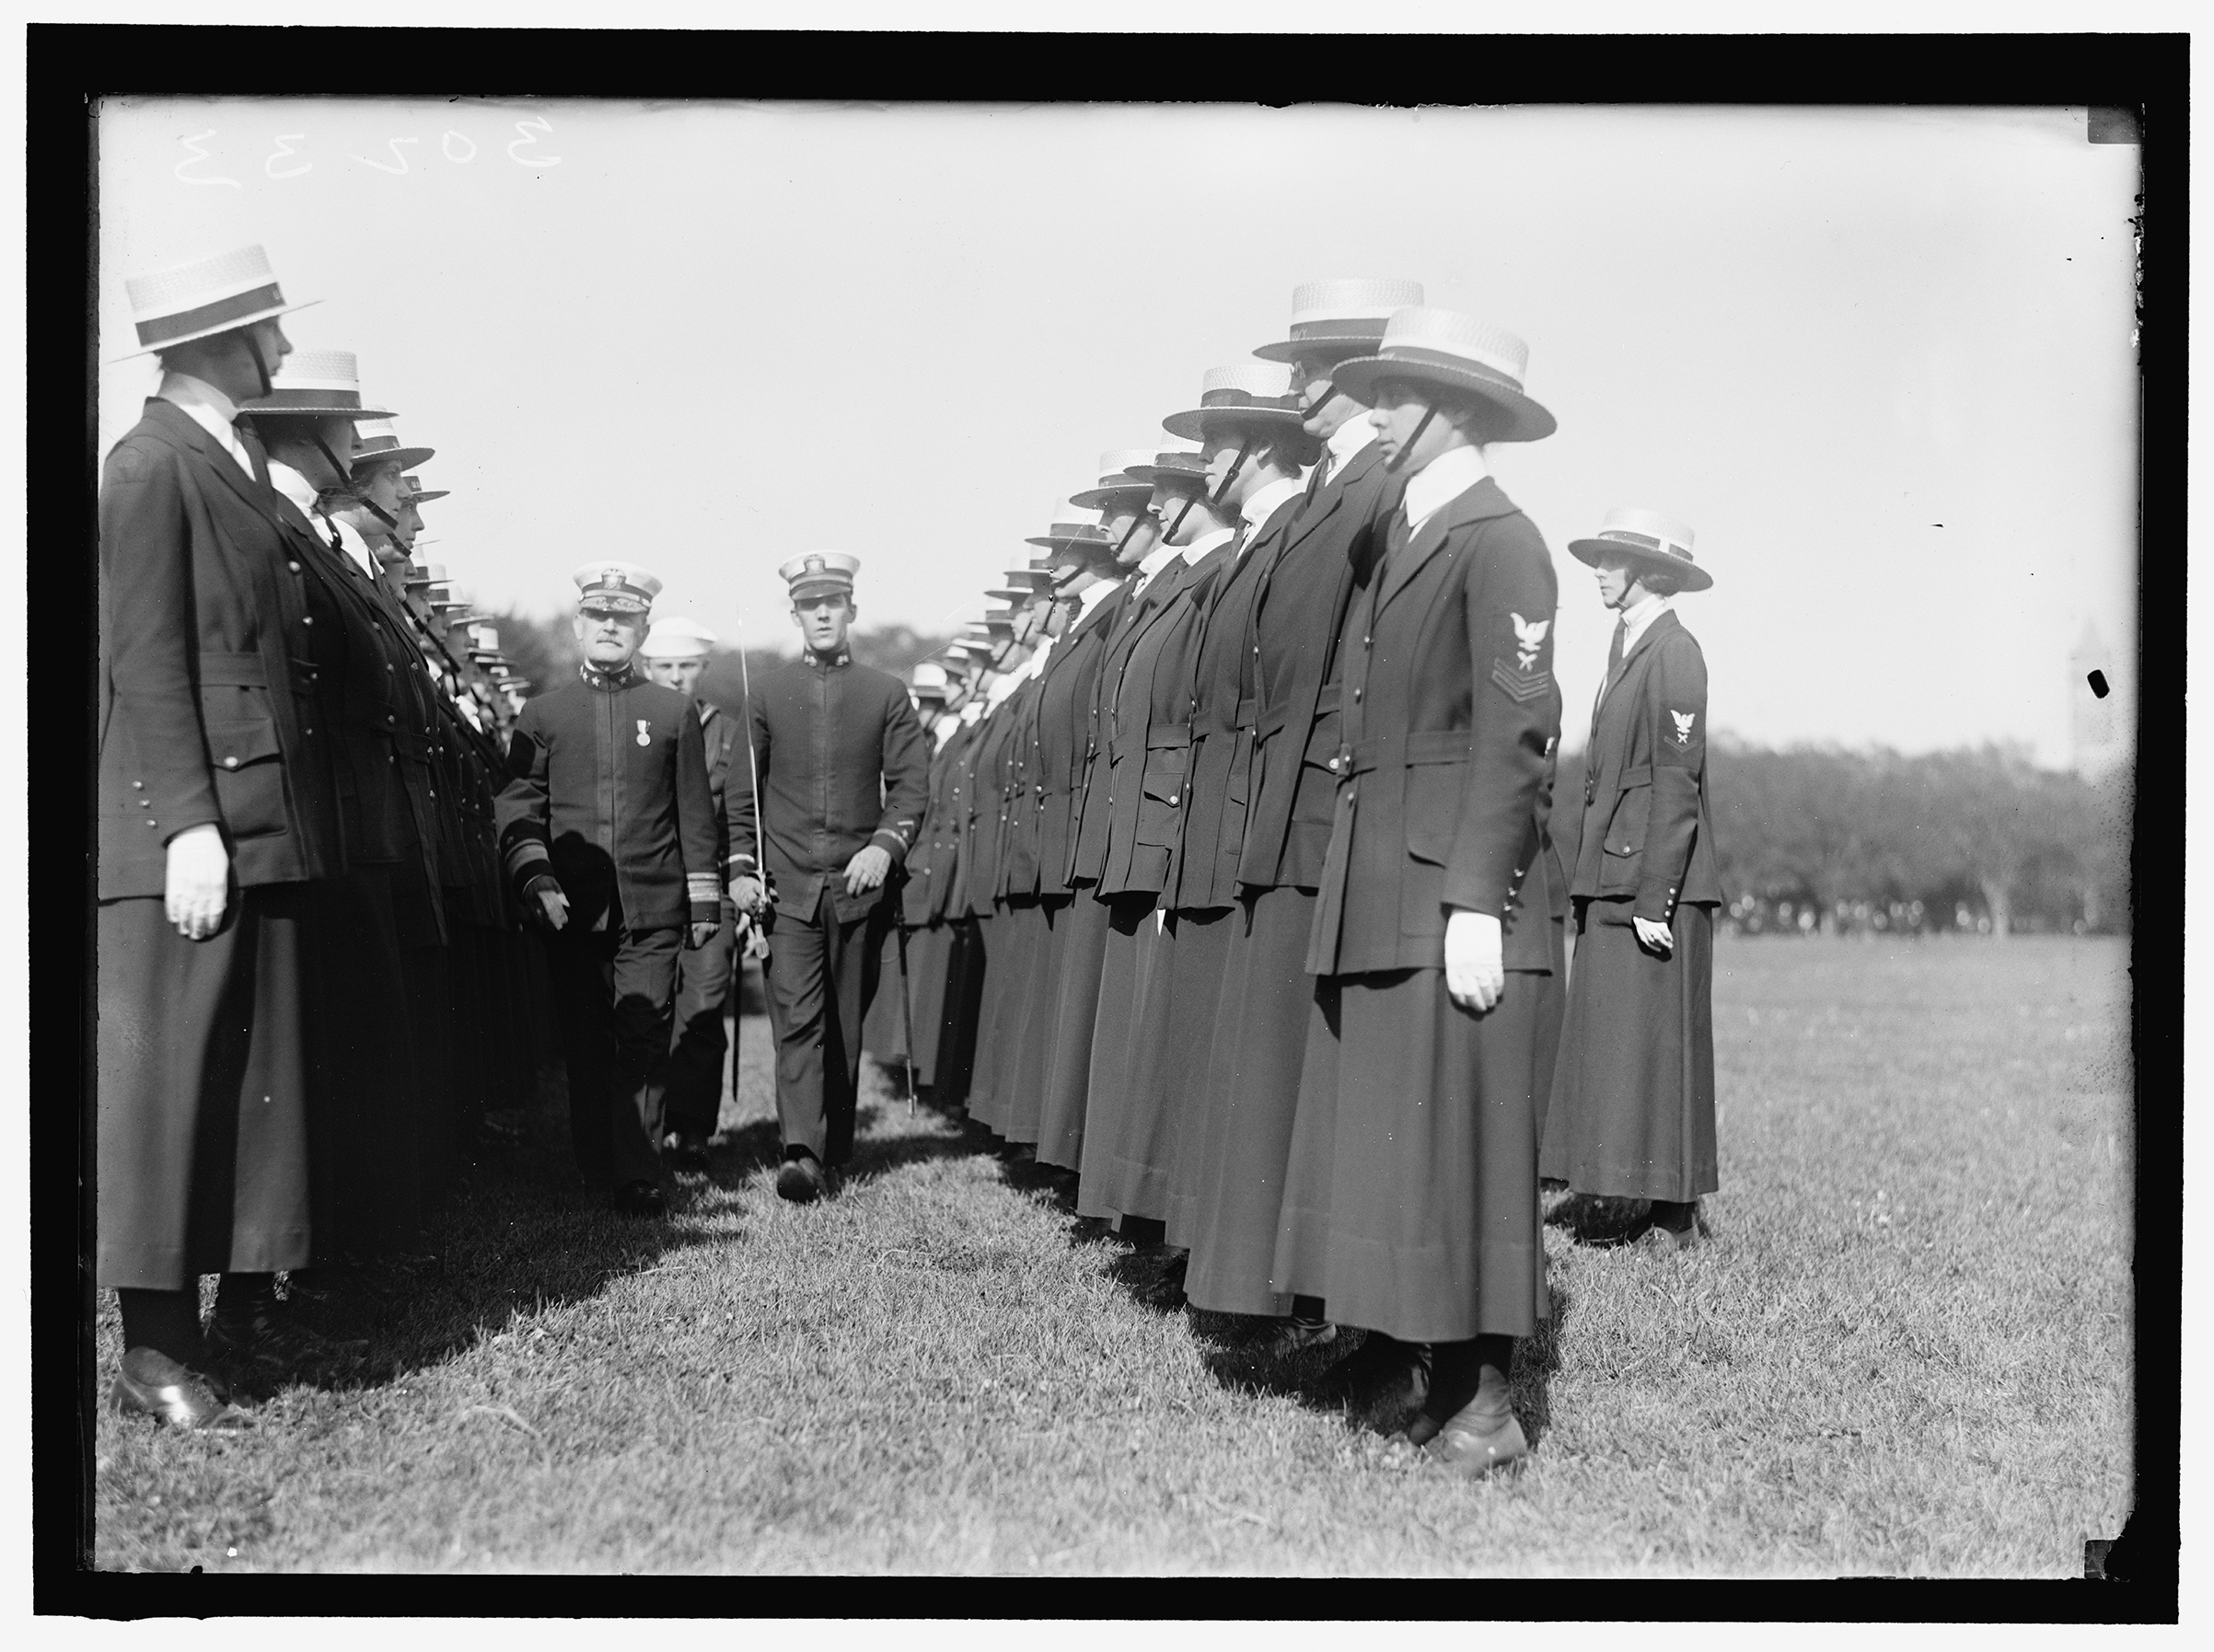 A group of Yeomanettes at an inspection in 1919